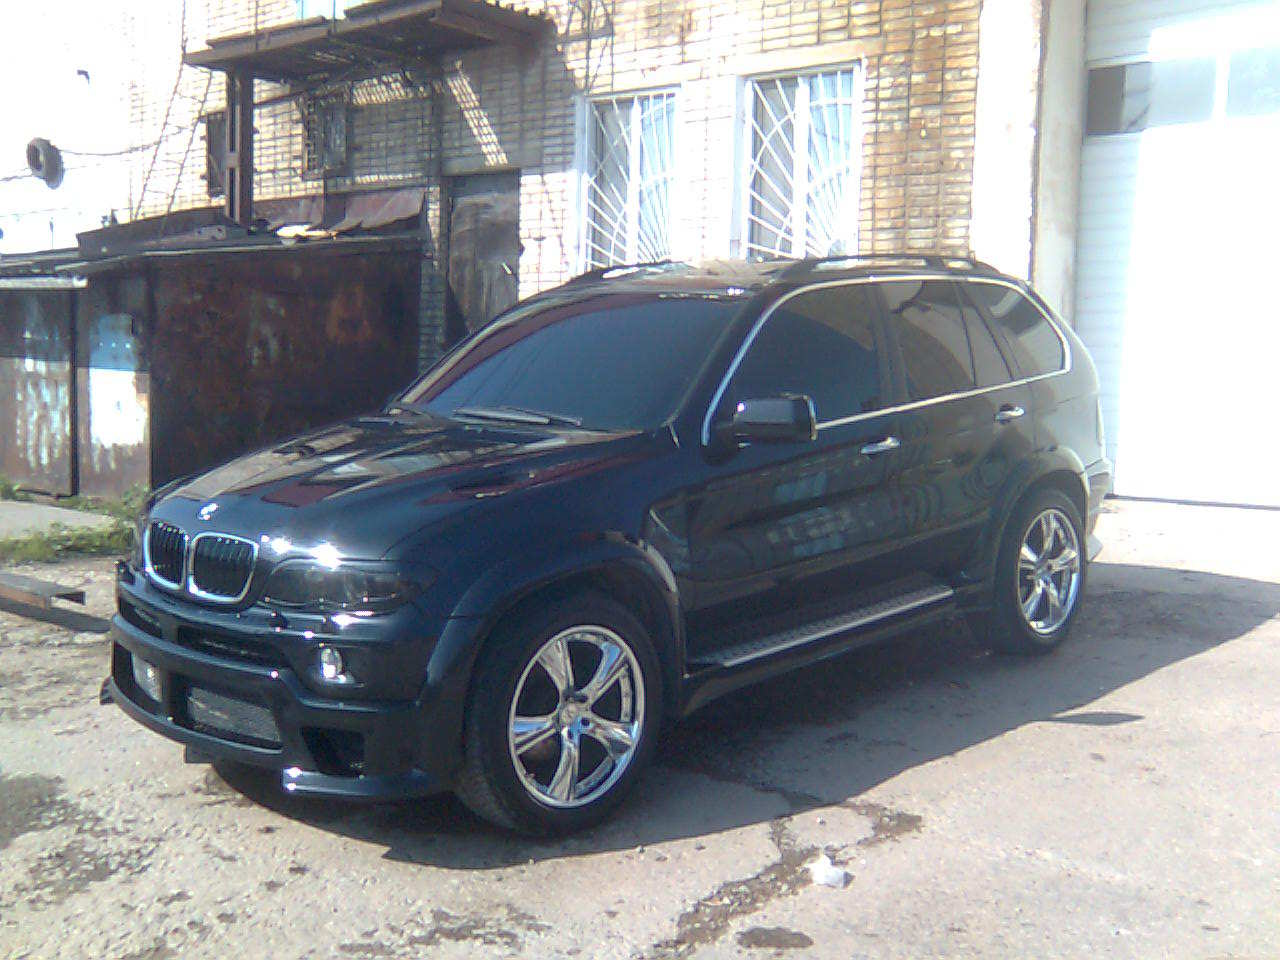 2004 bmw x5 for sale 4 4 gasoline automatic for sale. Black Bedroom Furniture Sets. Home Design Ideas